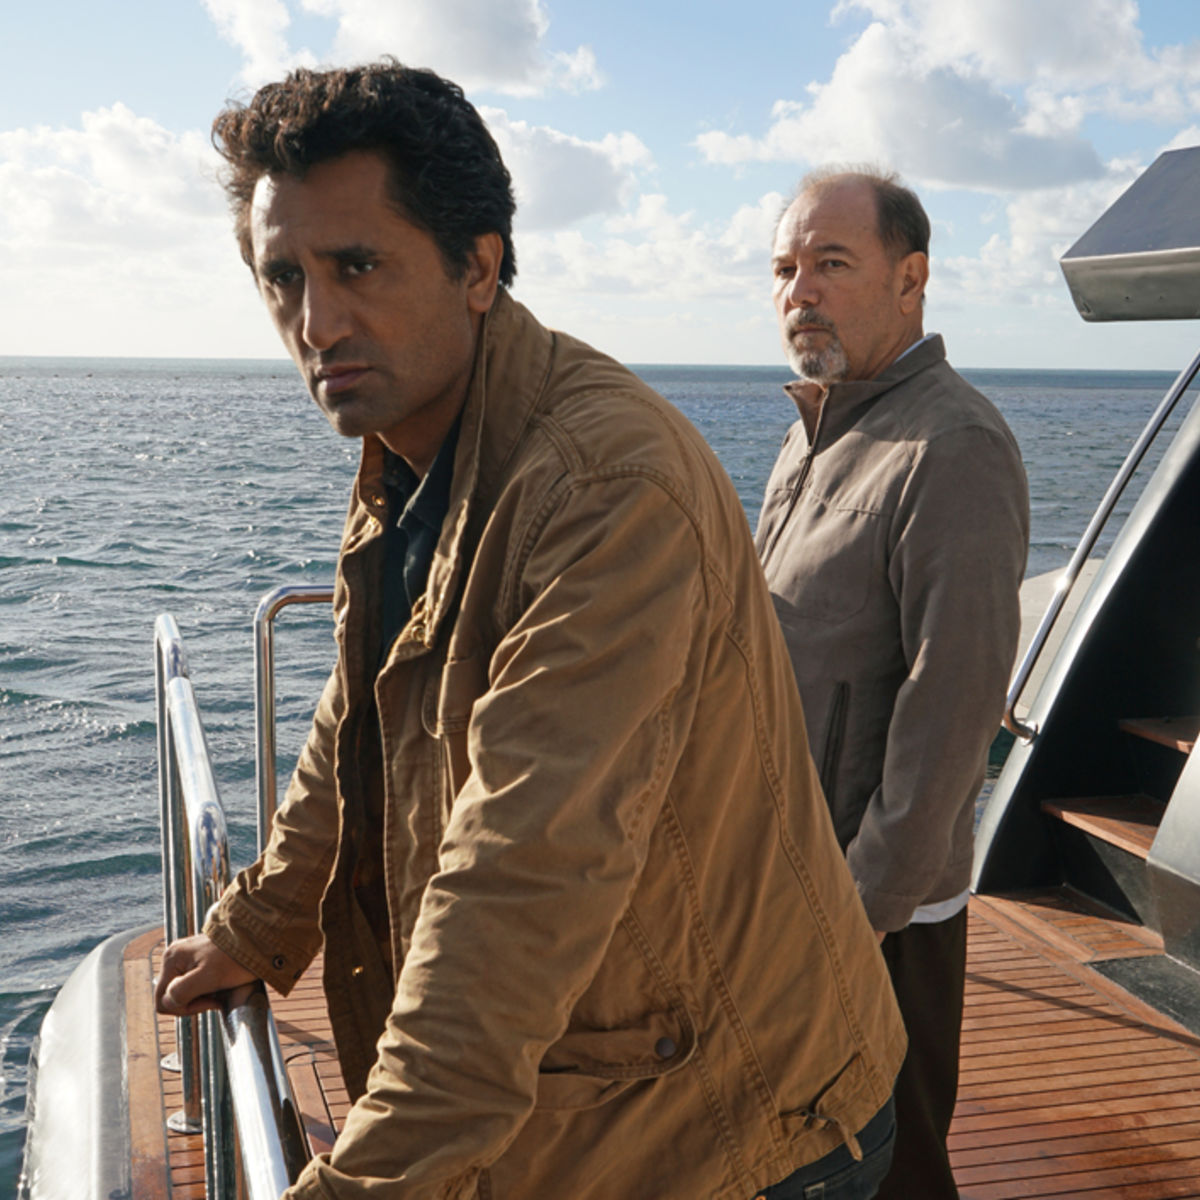 fear-walking-dead-season-2.jpg